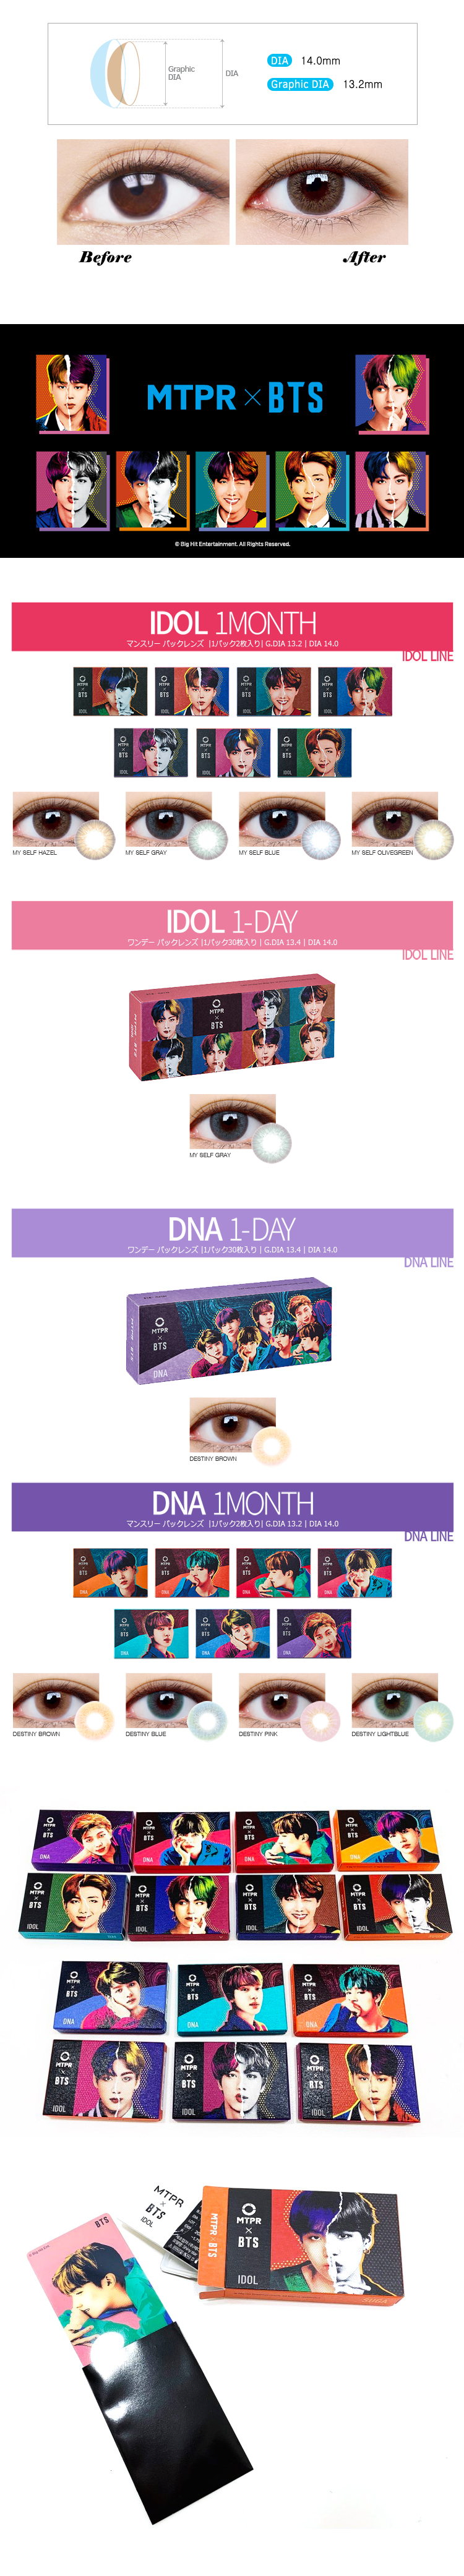 [1ヶ月] BTS IDOL マイセルフ マンスリー (BTS IDOL 1MONTH MY SELF HAZEL) DIA 14.0mm [1箱2枚]